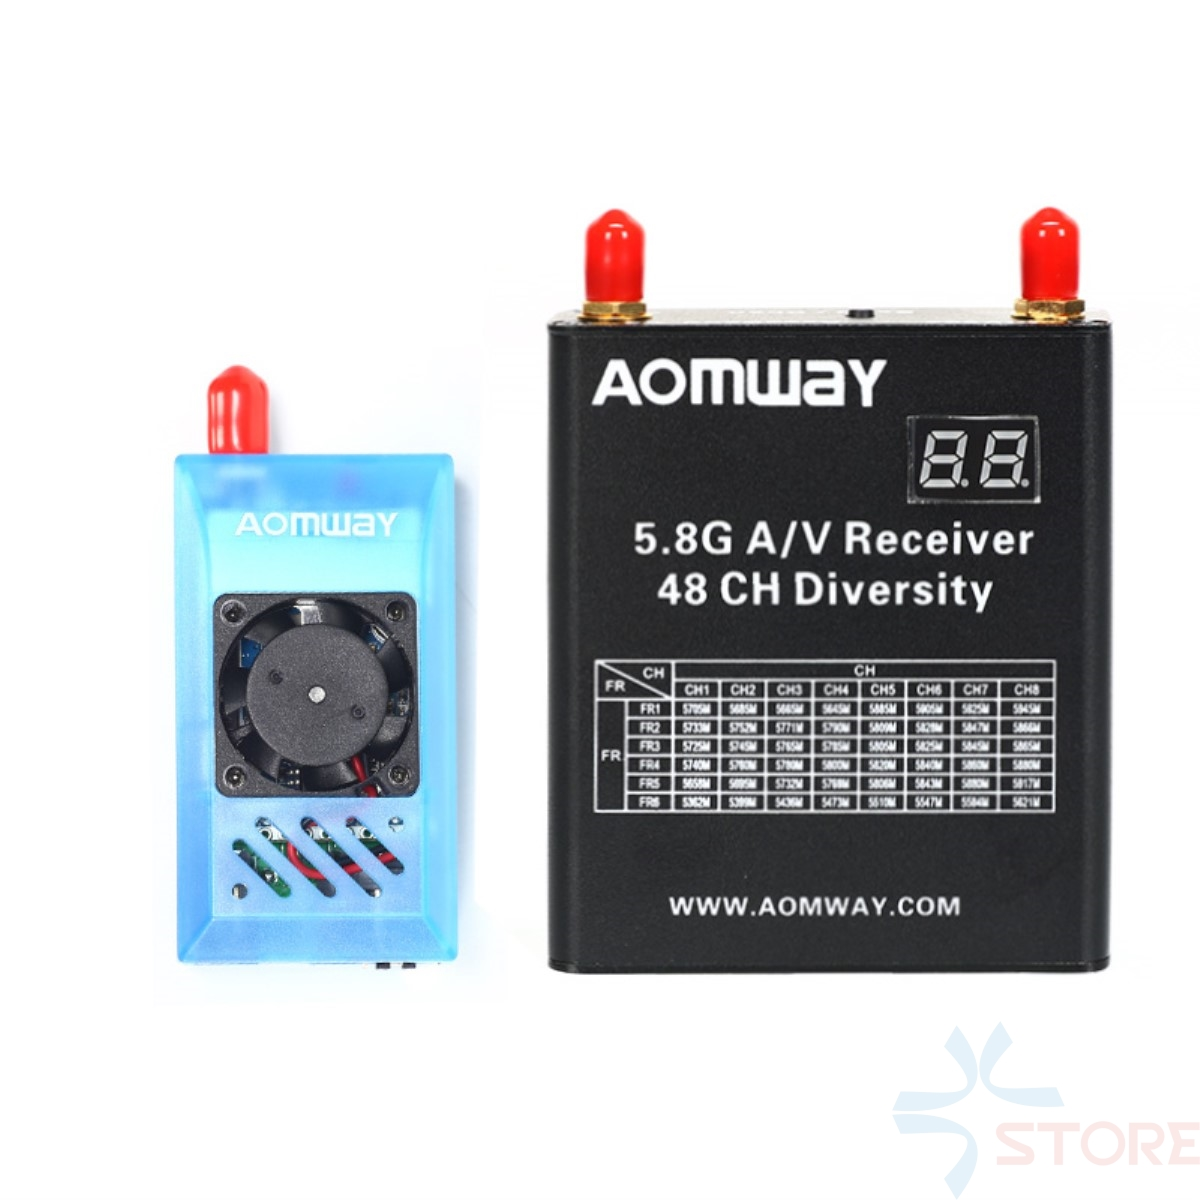 цена на Aomway 5.8Ghz 1W 1000mW 32CH AV Audio Video Transmitter and Receiver w/DVR Recorder function for FPV